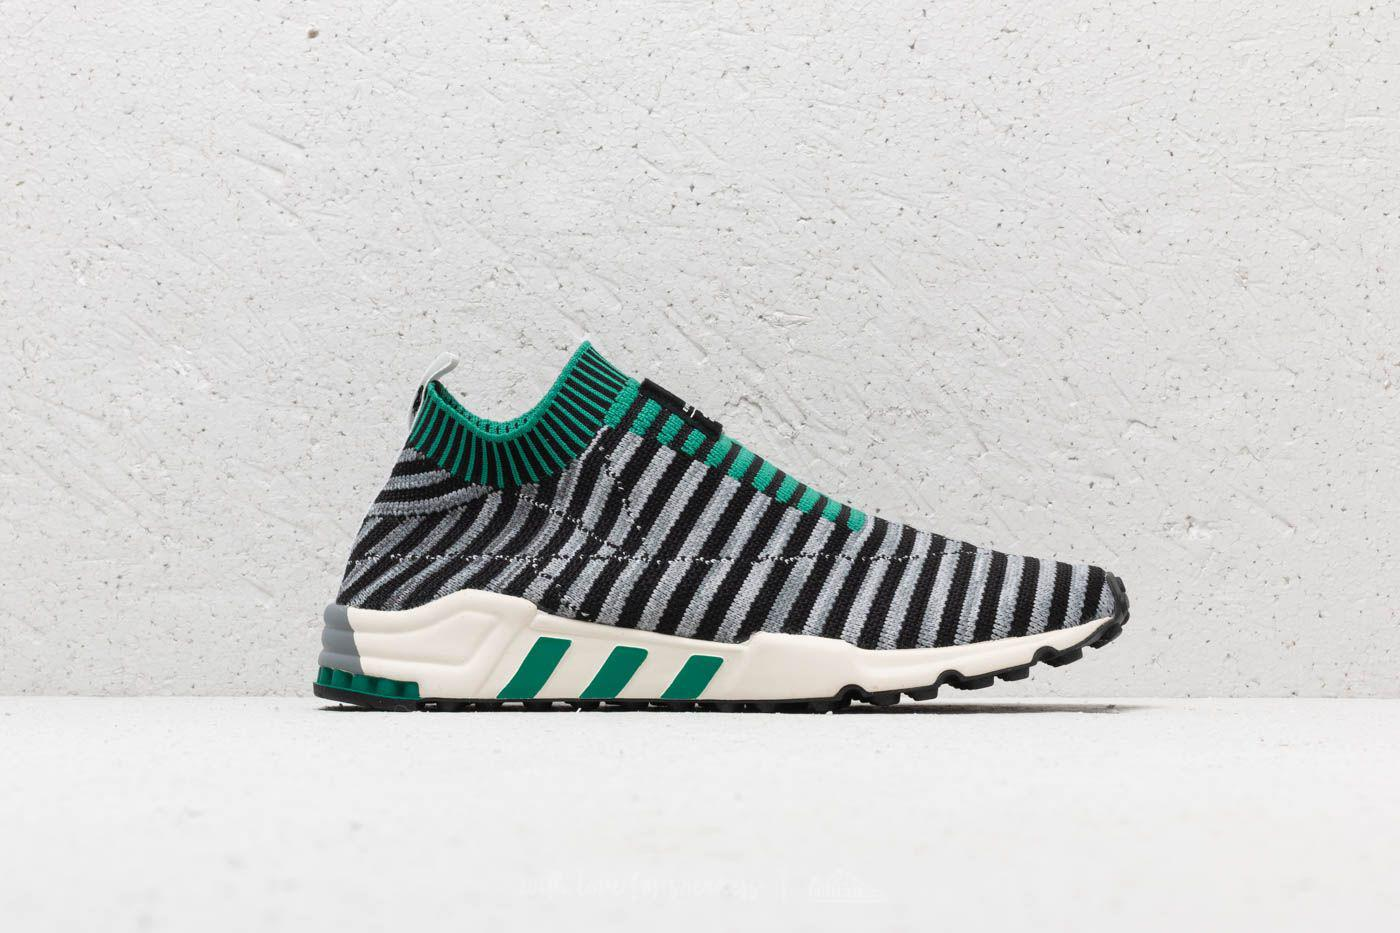 wholesale dealer 07843 4b80c Lyst - adidas Eqt Support Sk Primeknit Shoes in Green